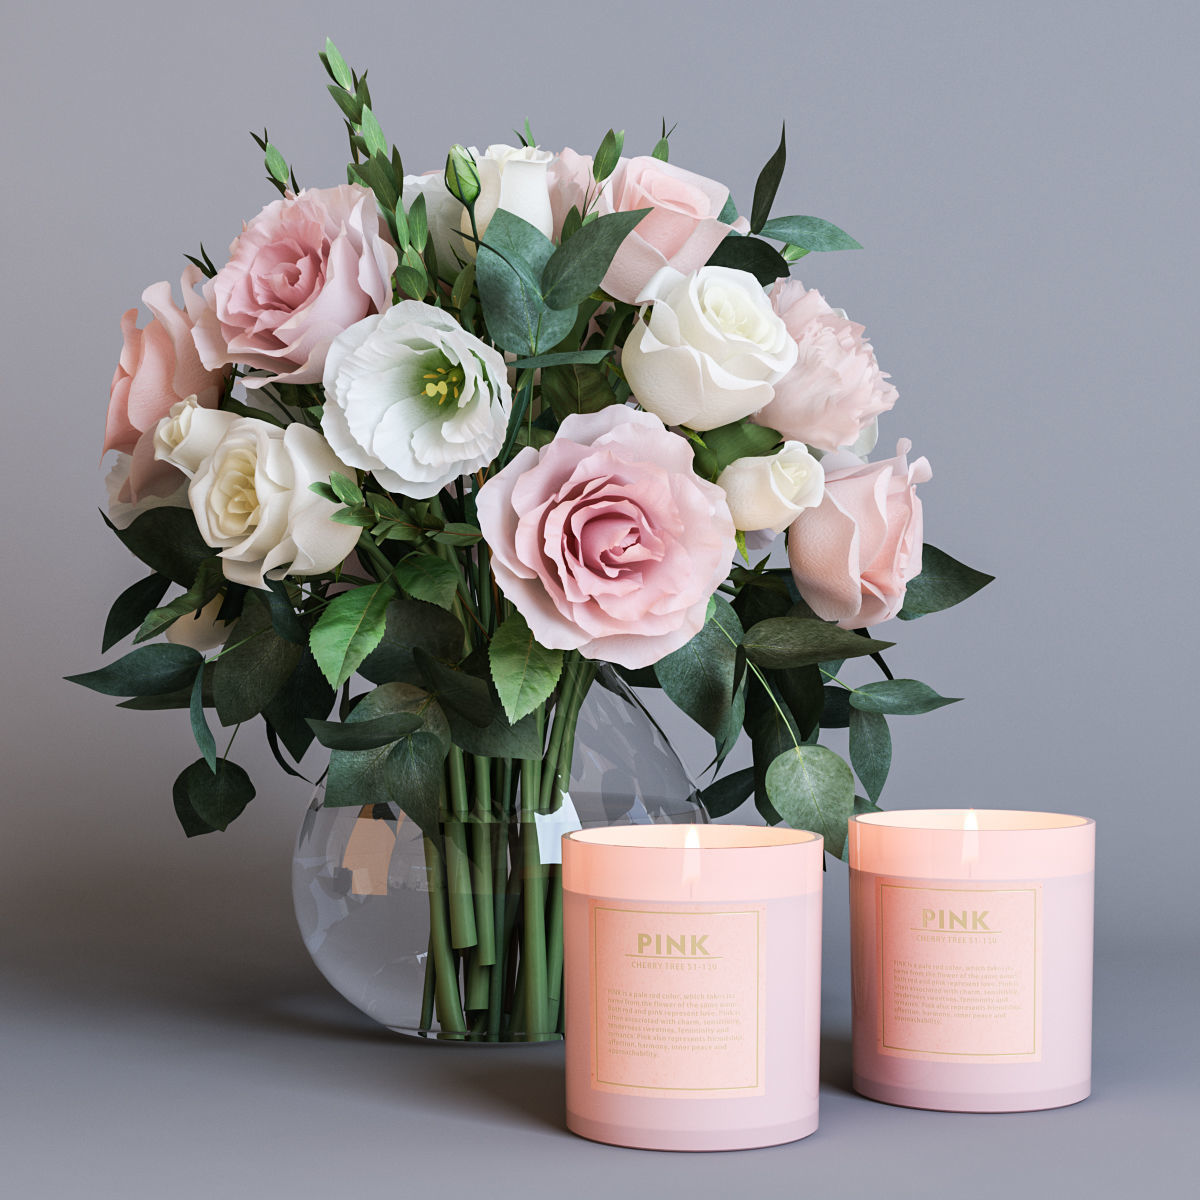 Flowers and candles 3D | CGTrader